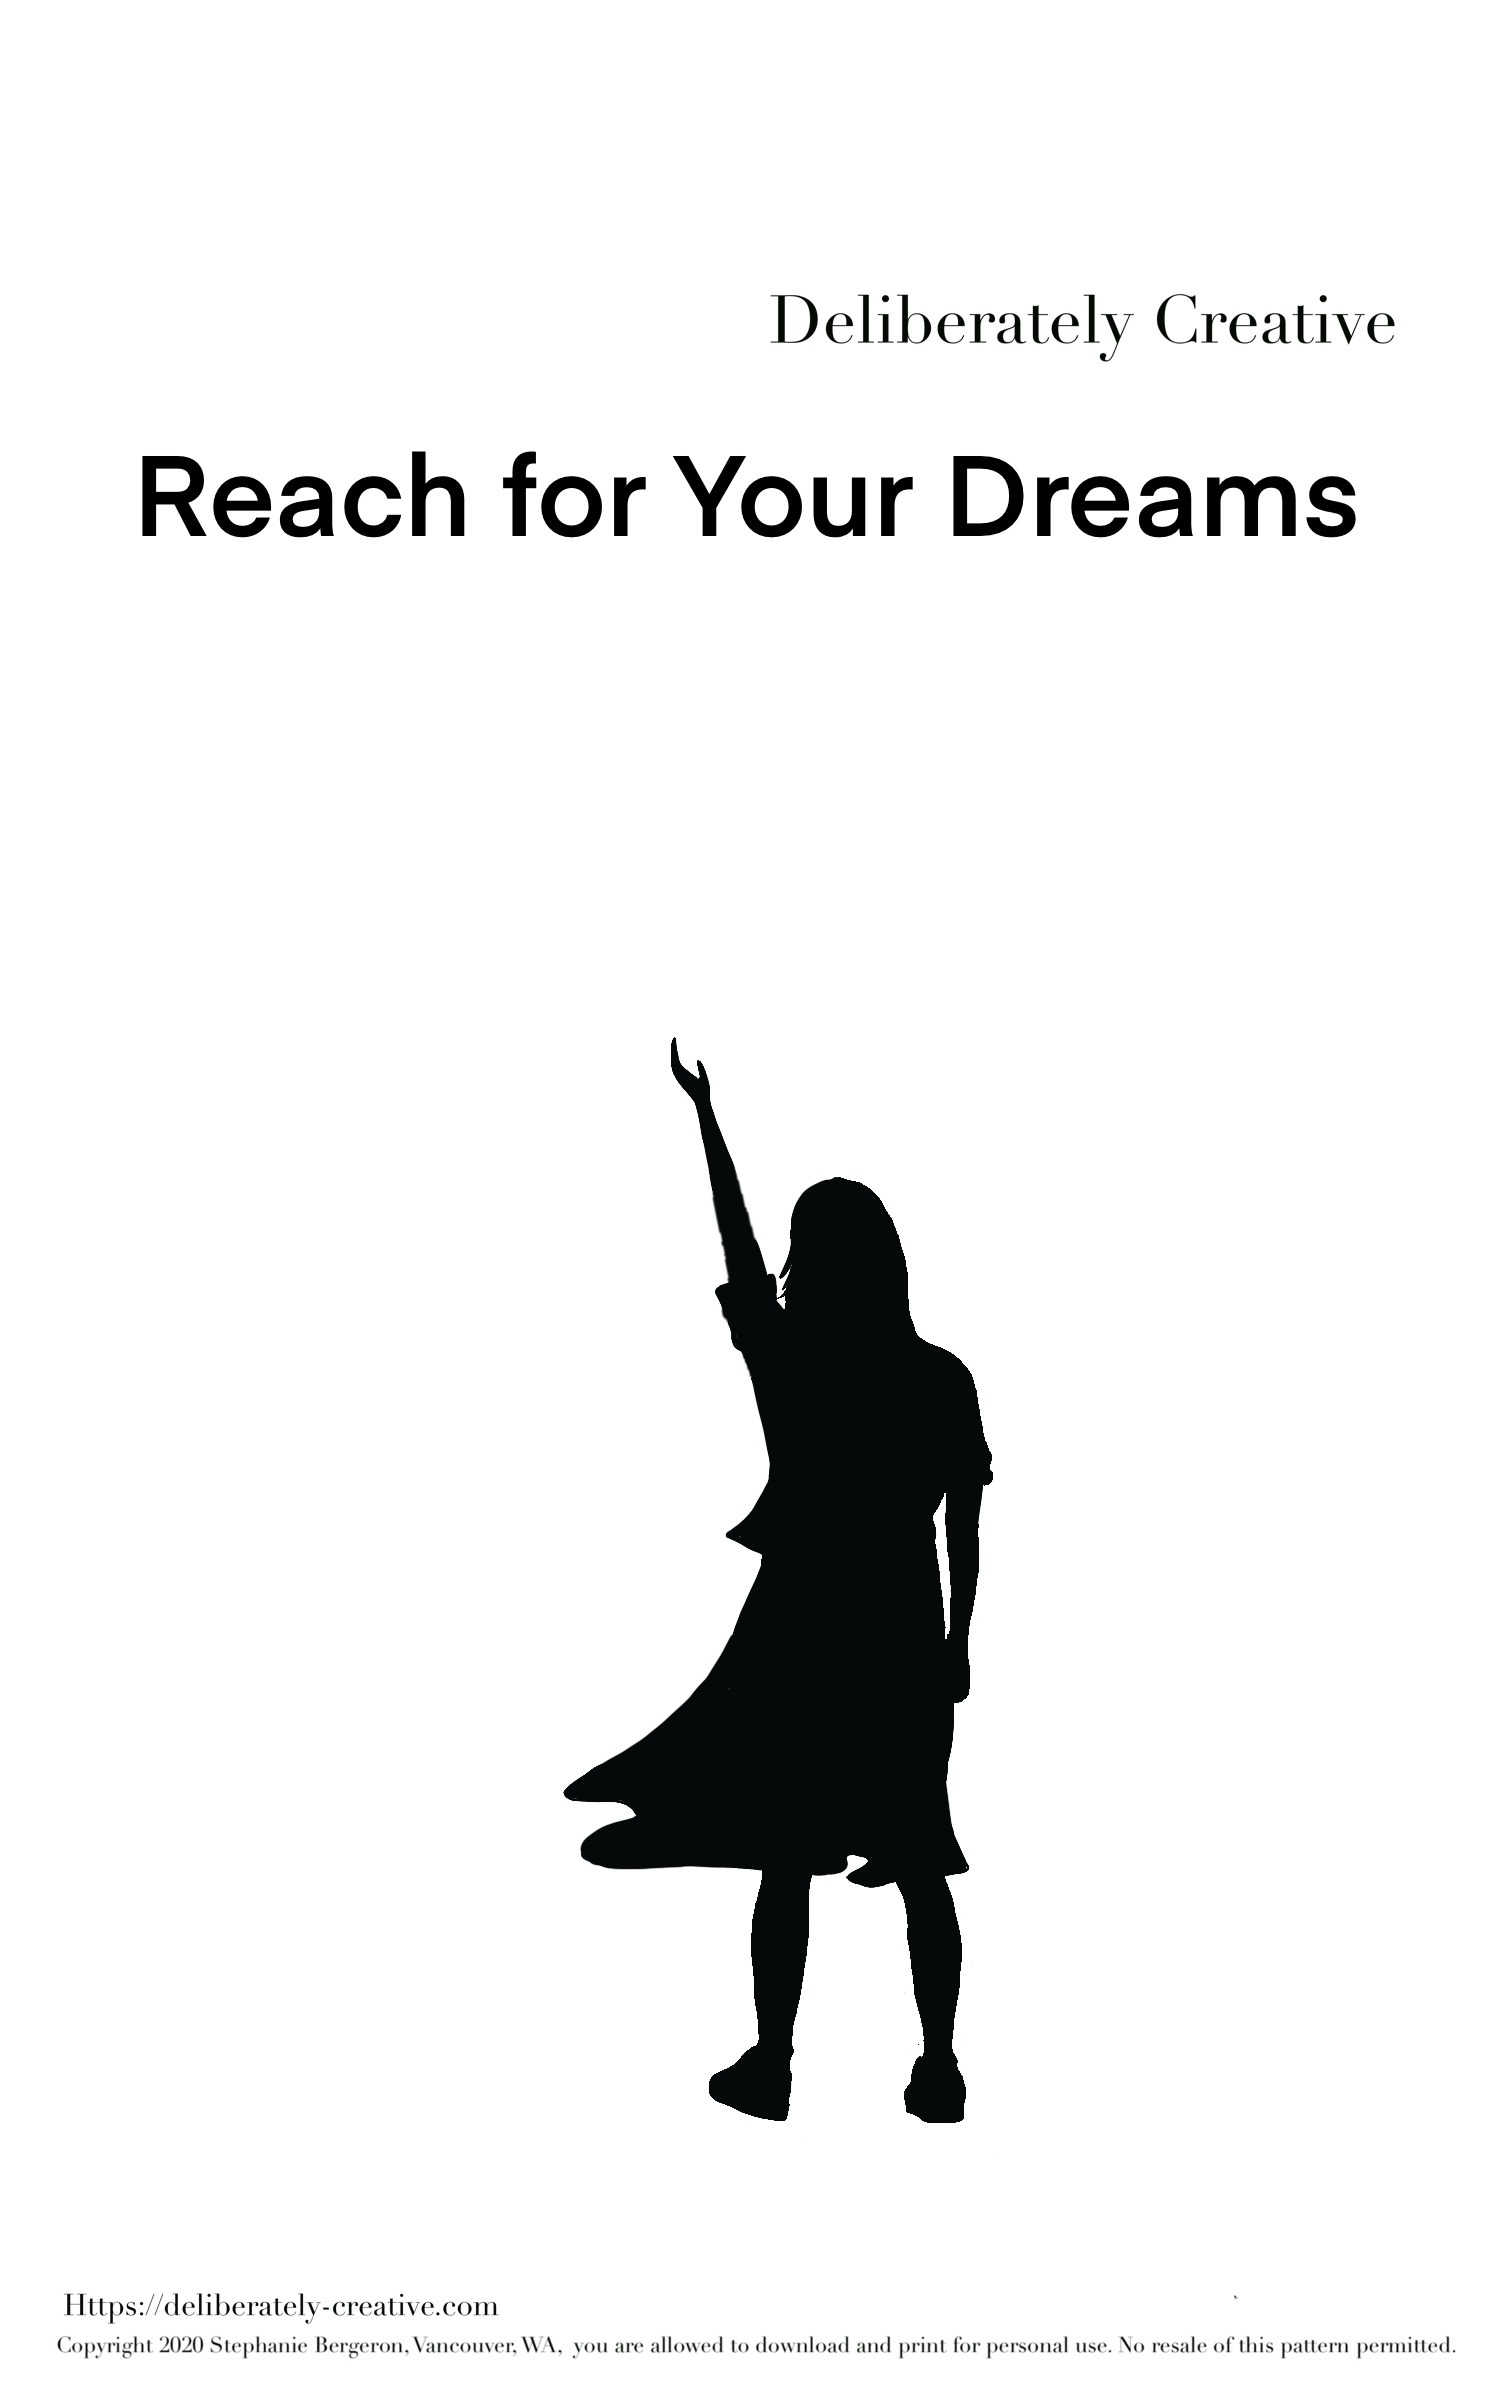 Reach for your Dreams Video Lesson on Deliberately Creative Youtube